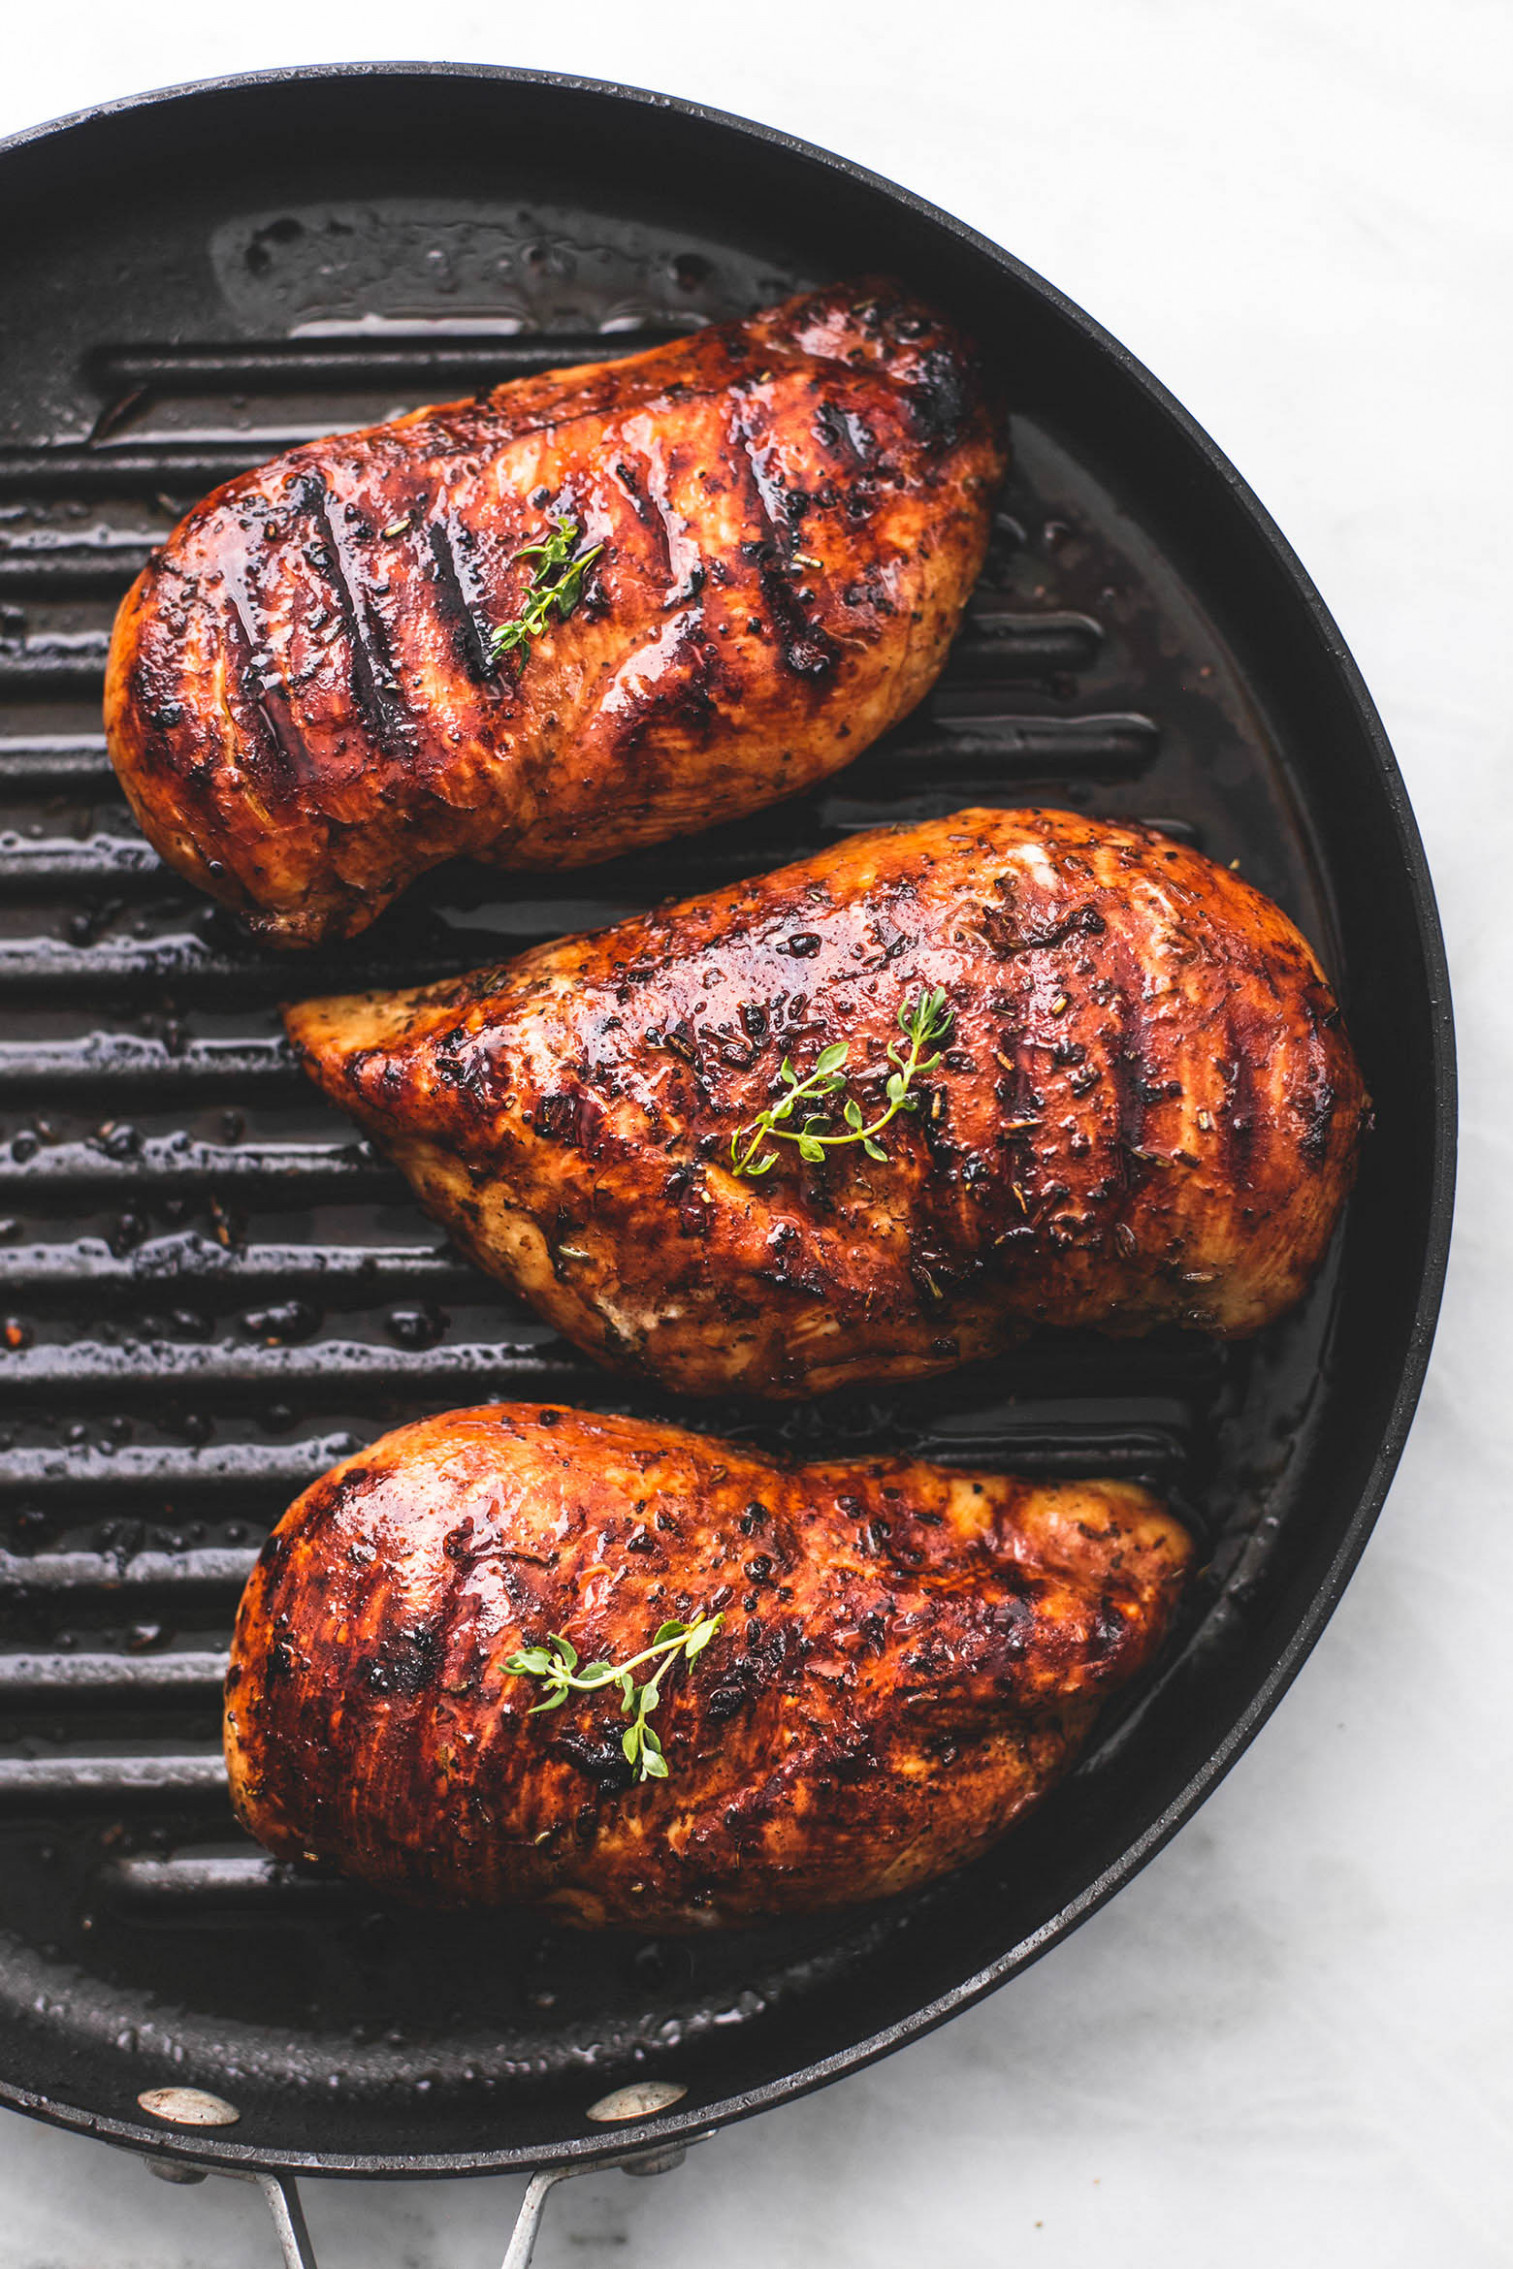 Best Healthy Grilled Chicken - chicken recipes on the grill